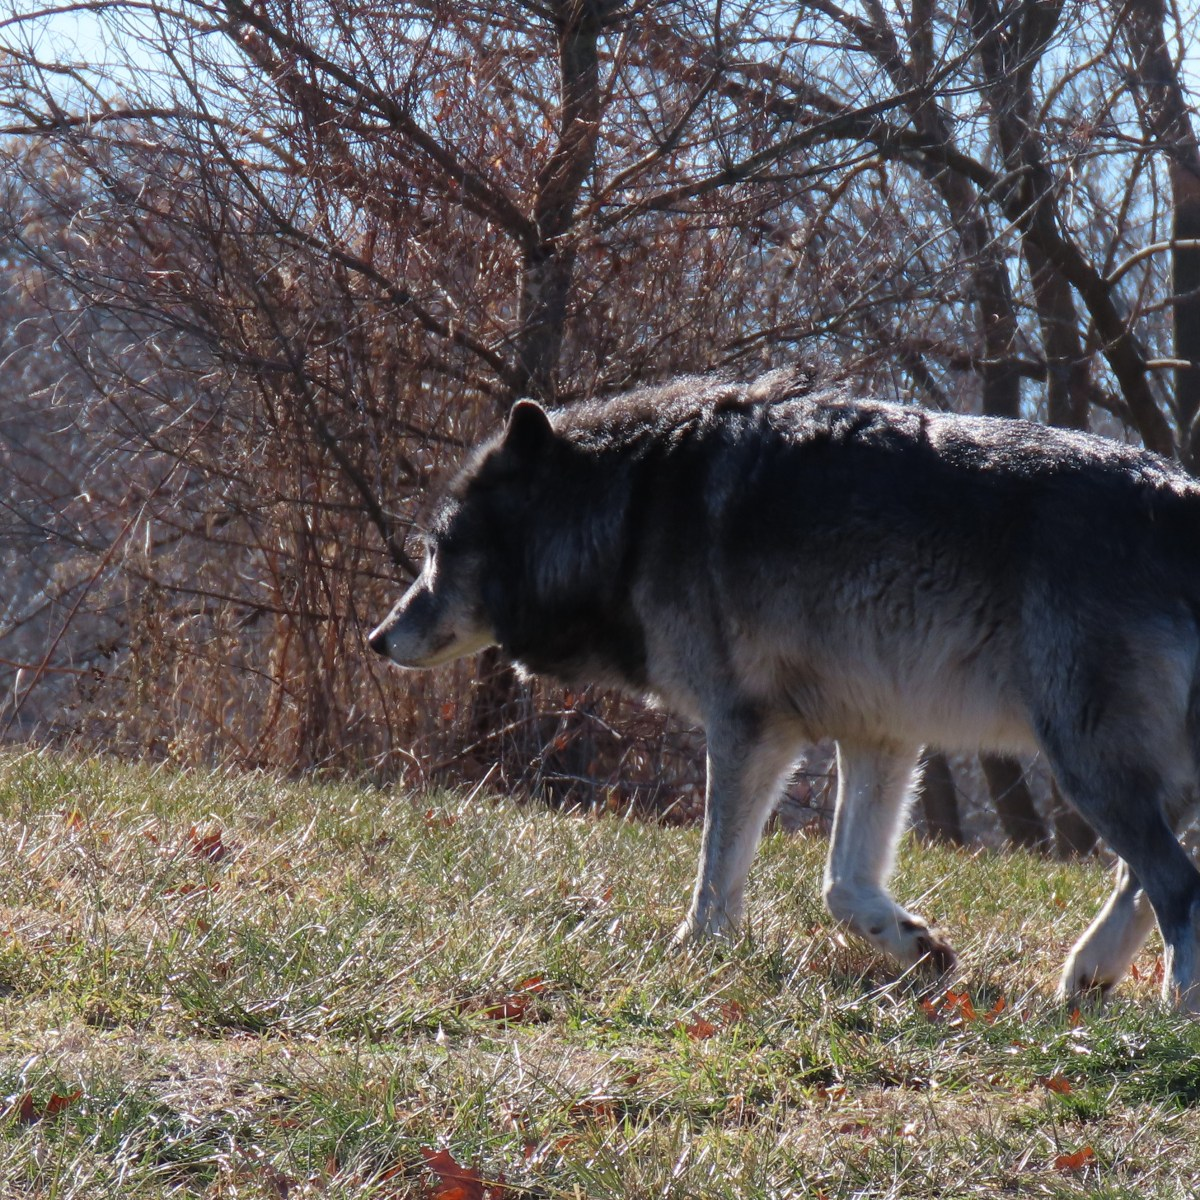 A gray wolf walks along a grassy area at the zoo